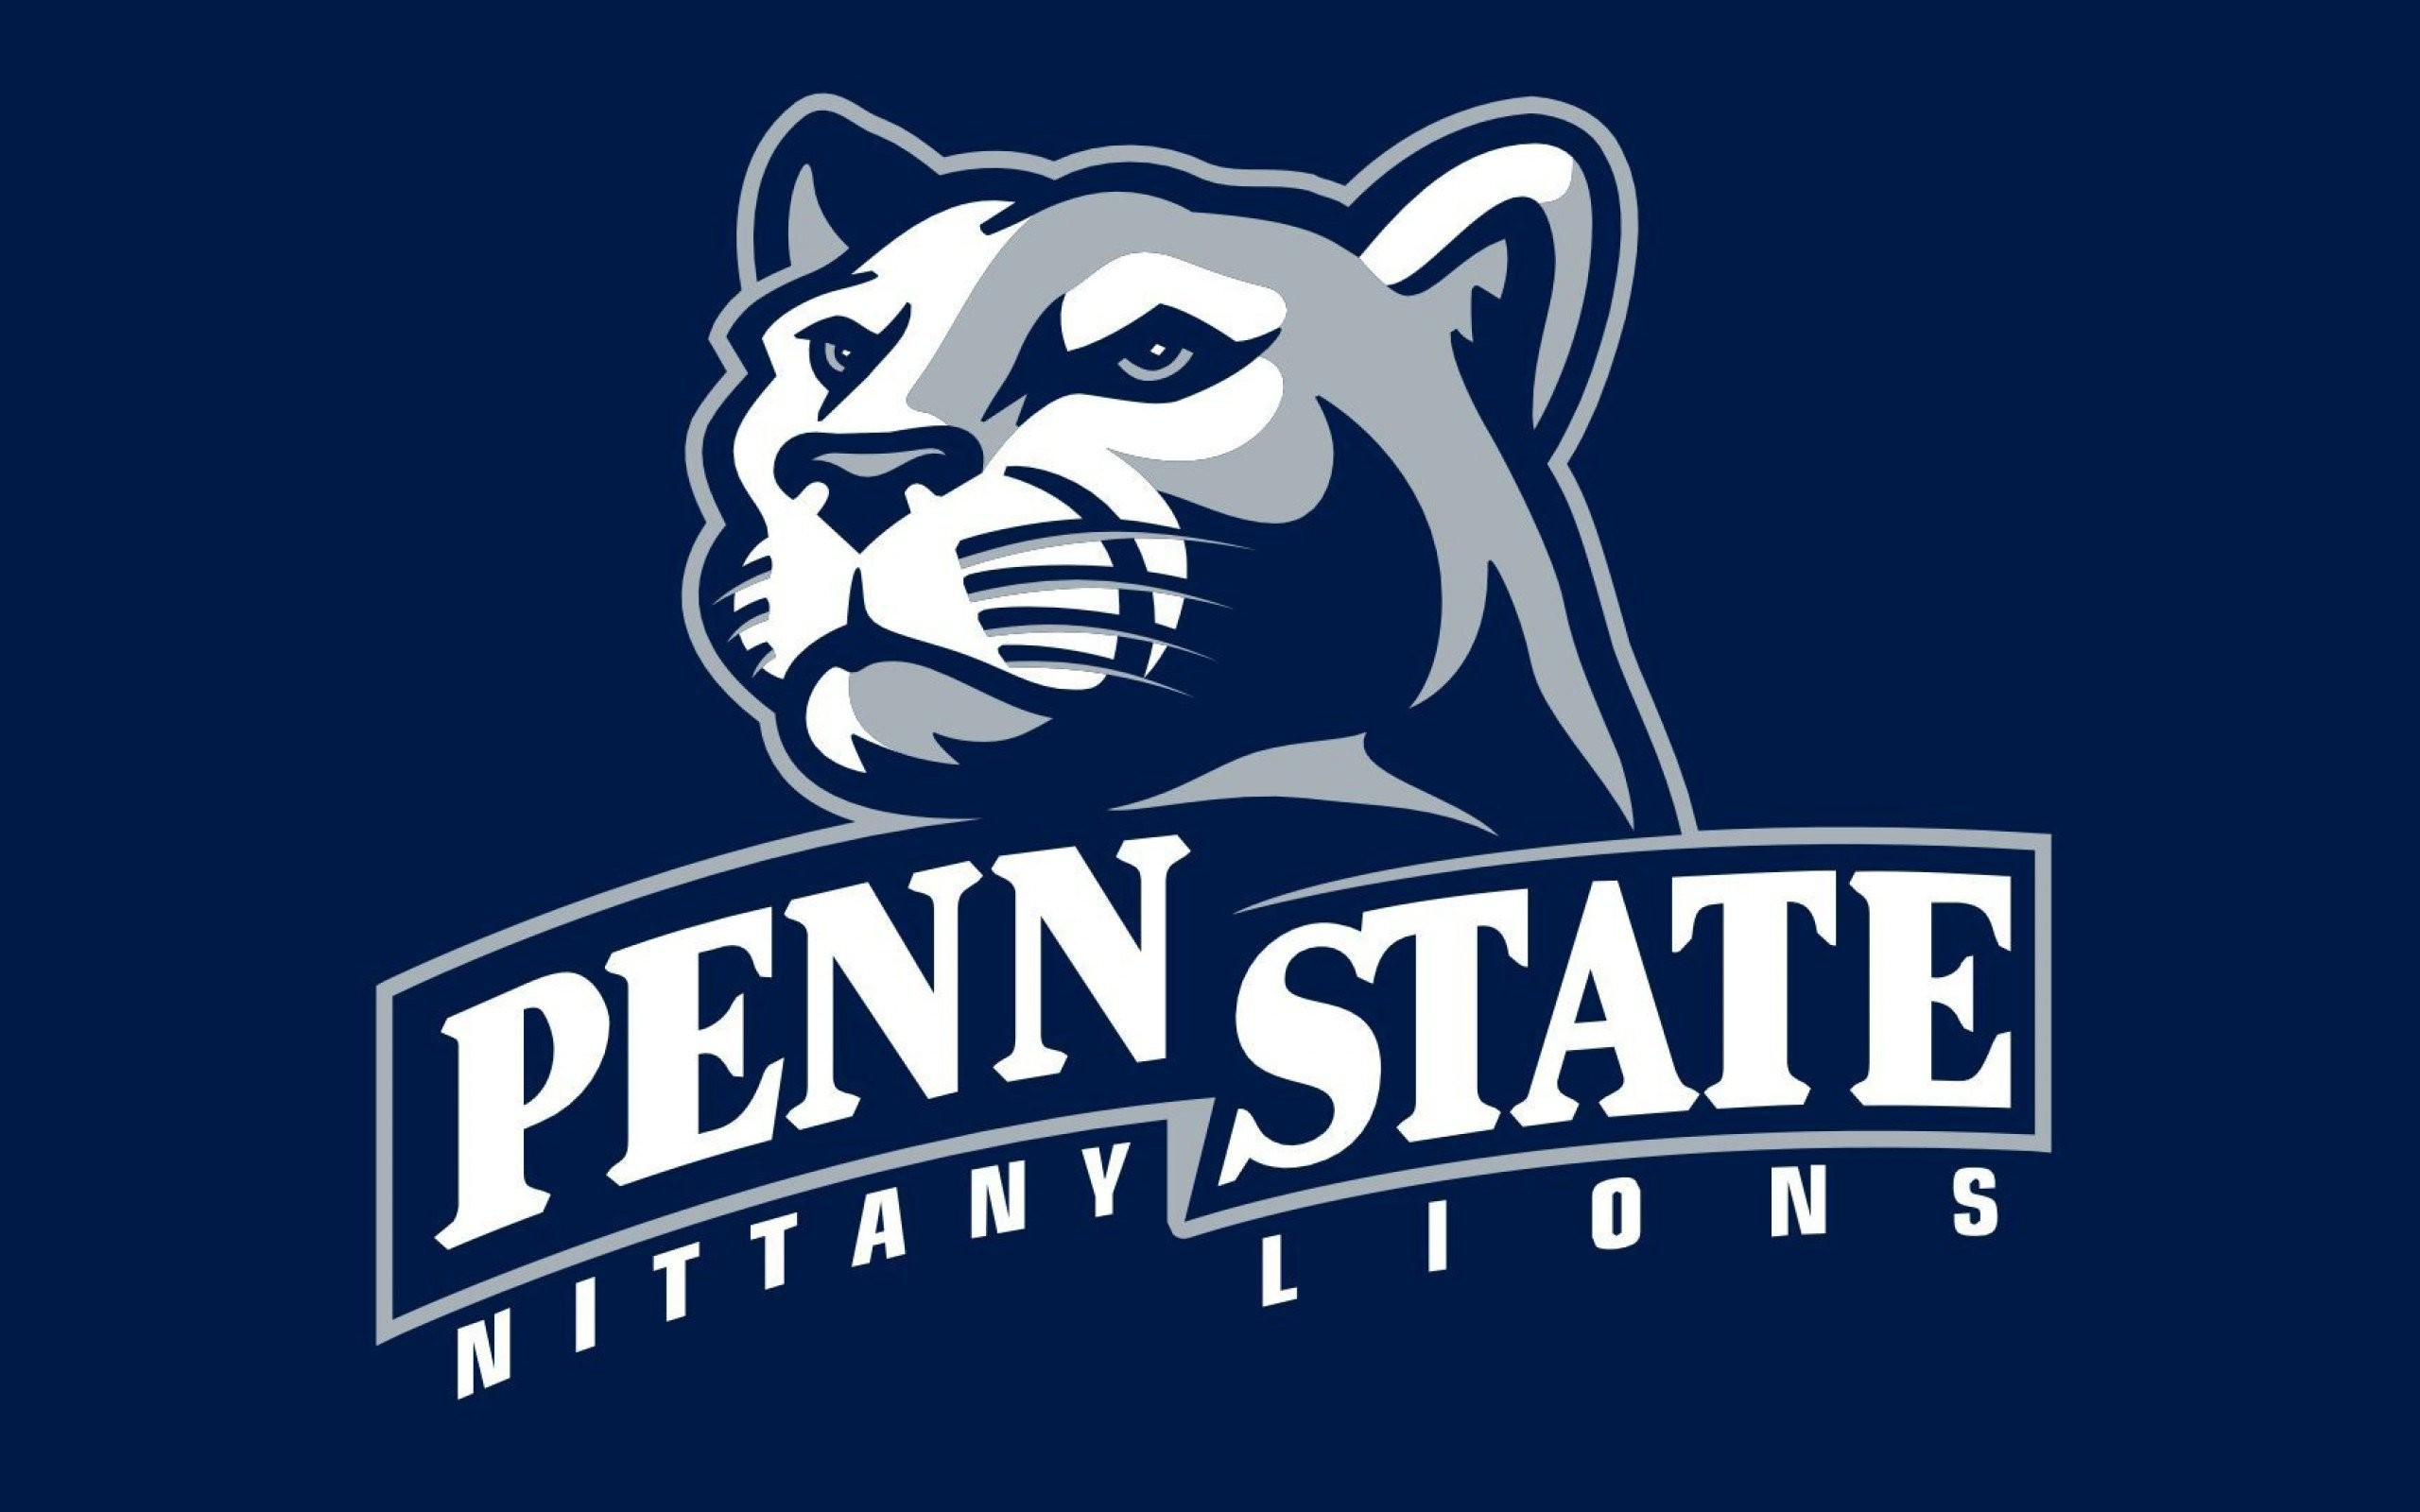 PENN STATE NITTANY LIONS college football wallpaper     595773    WallpaperUP